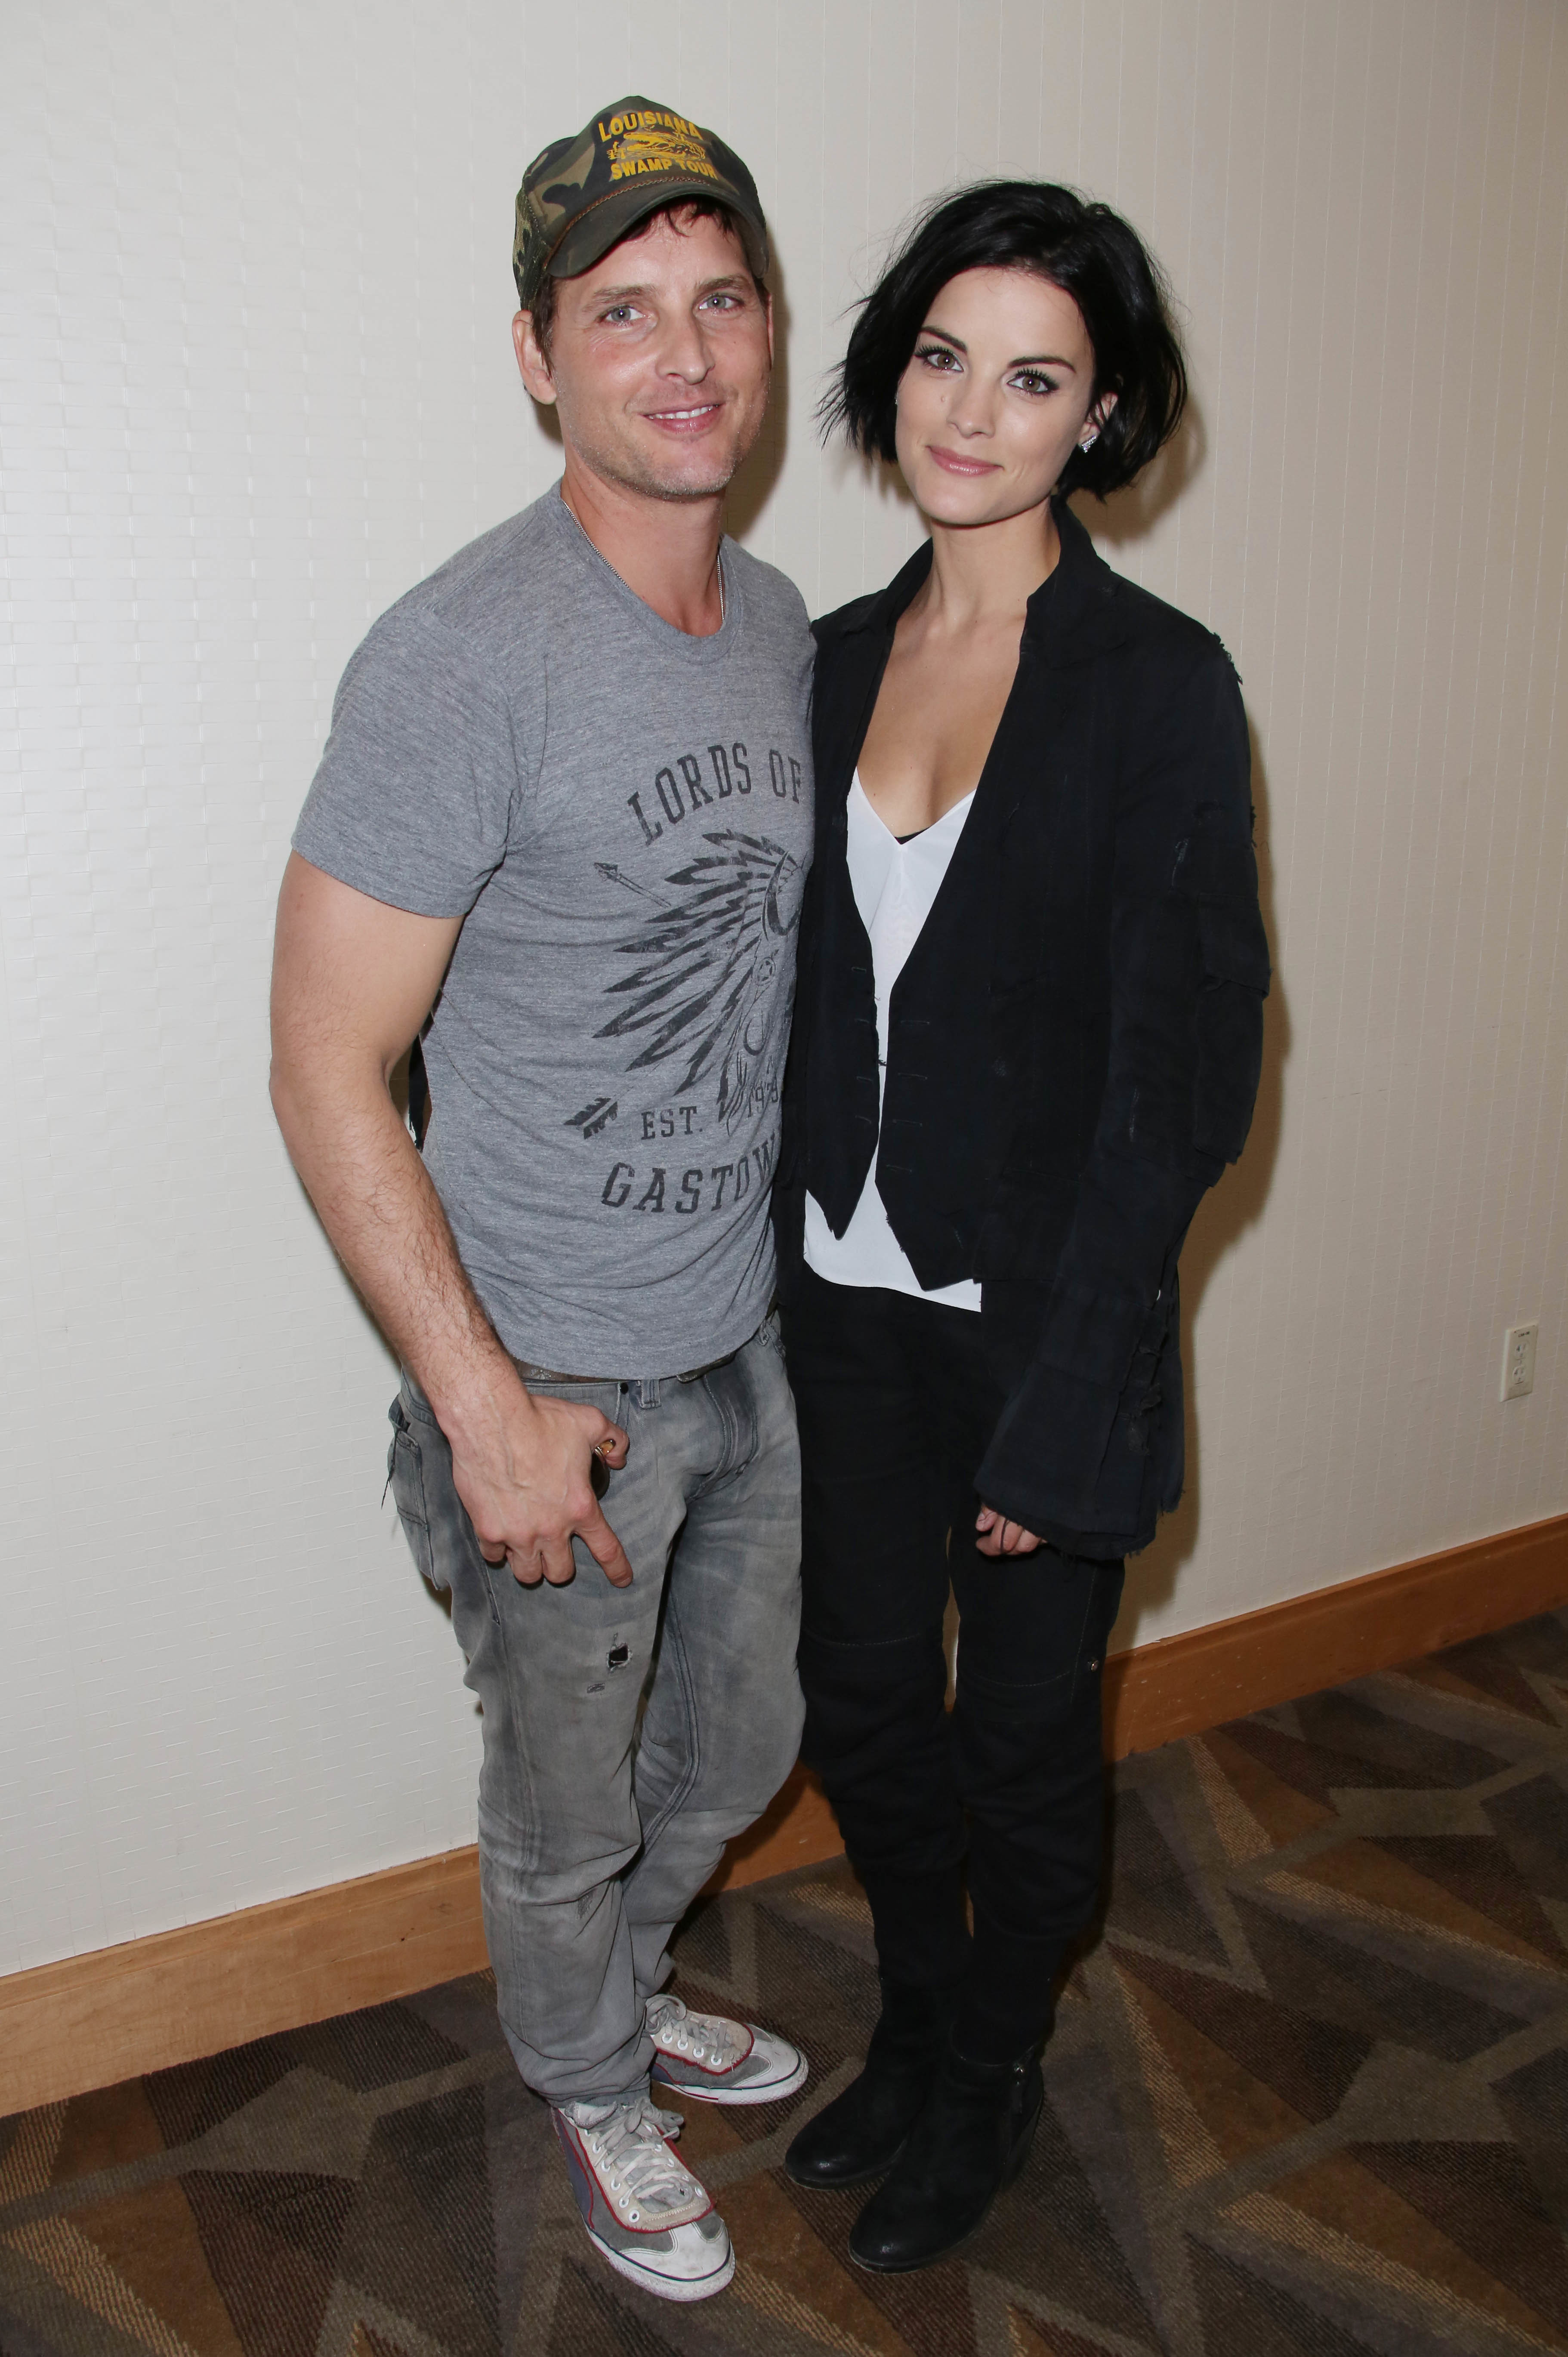 9. She was once engaged to Peter Facinelli